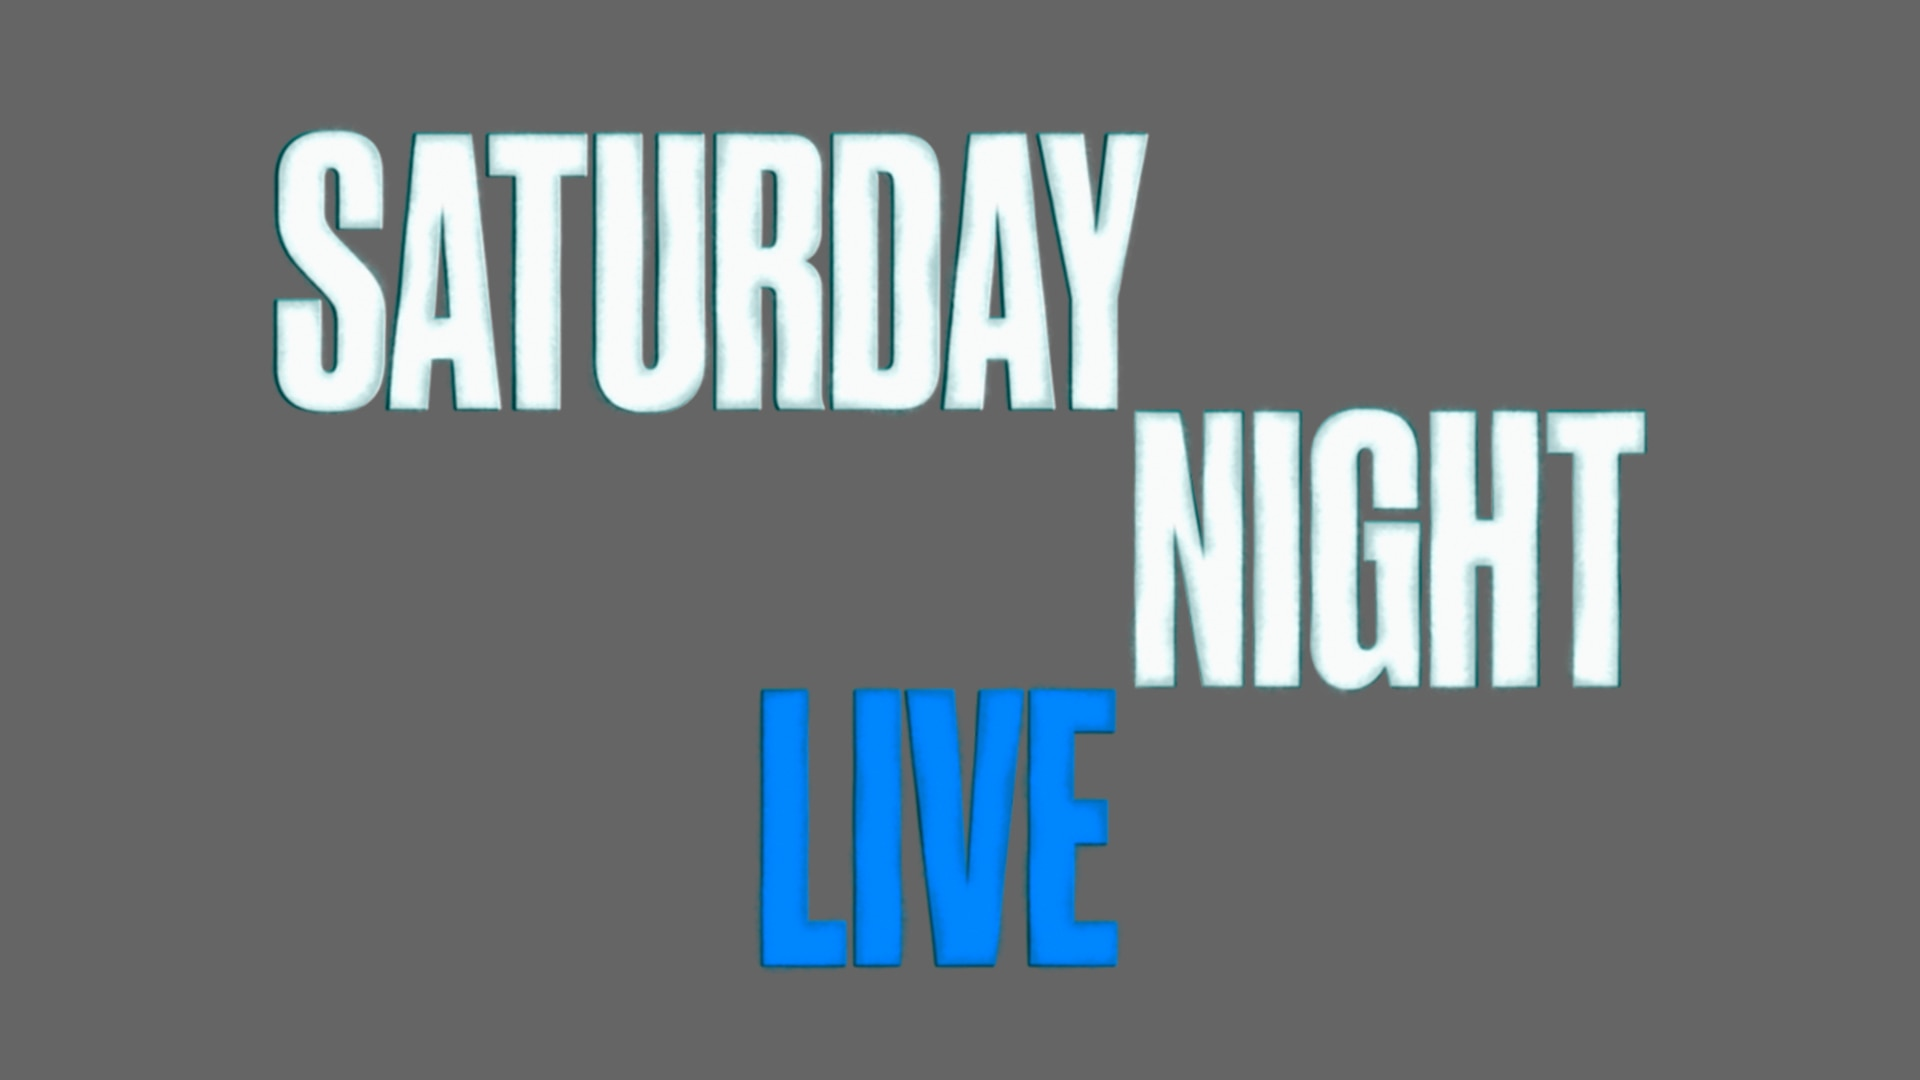 Saturday Night Live on FREECABLE TV